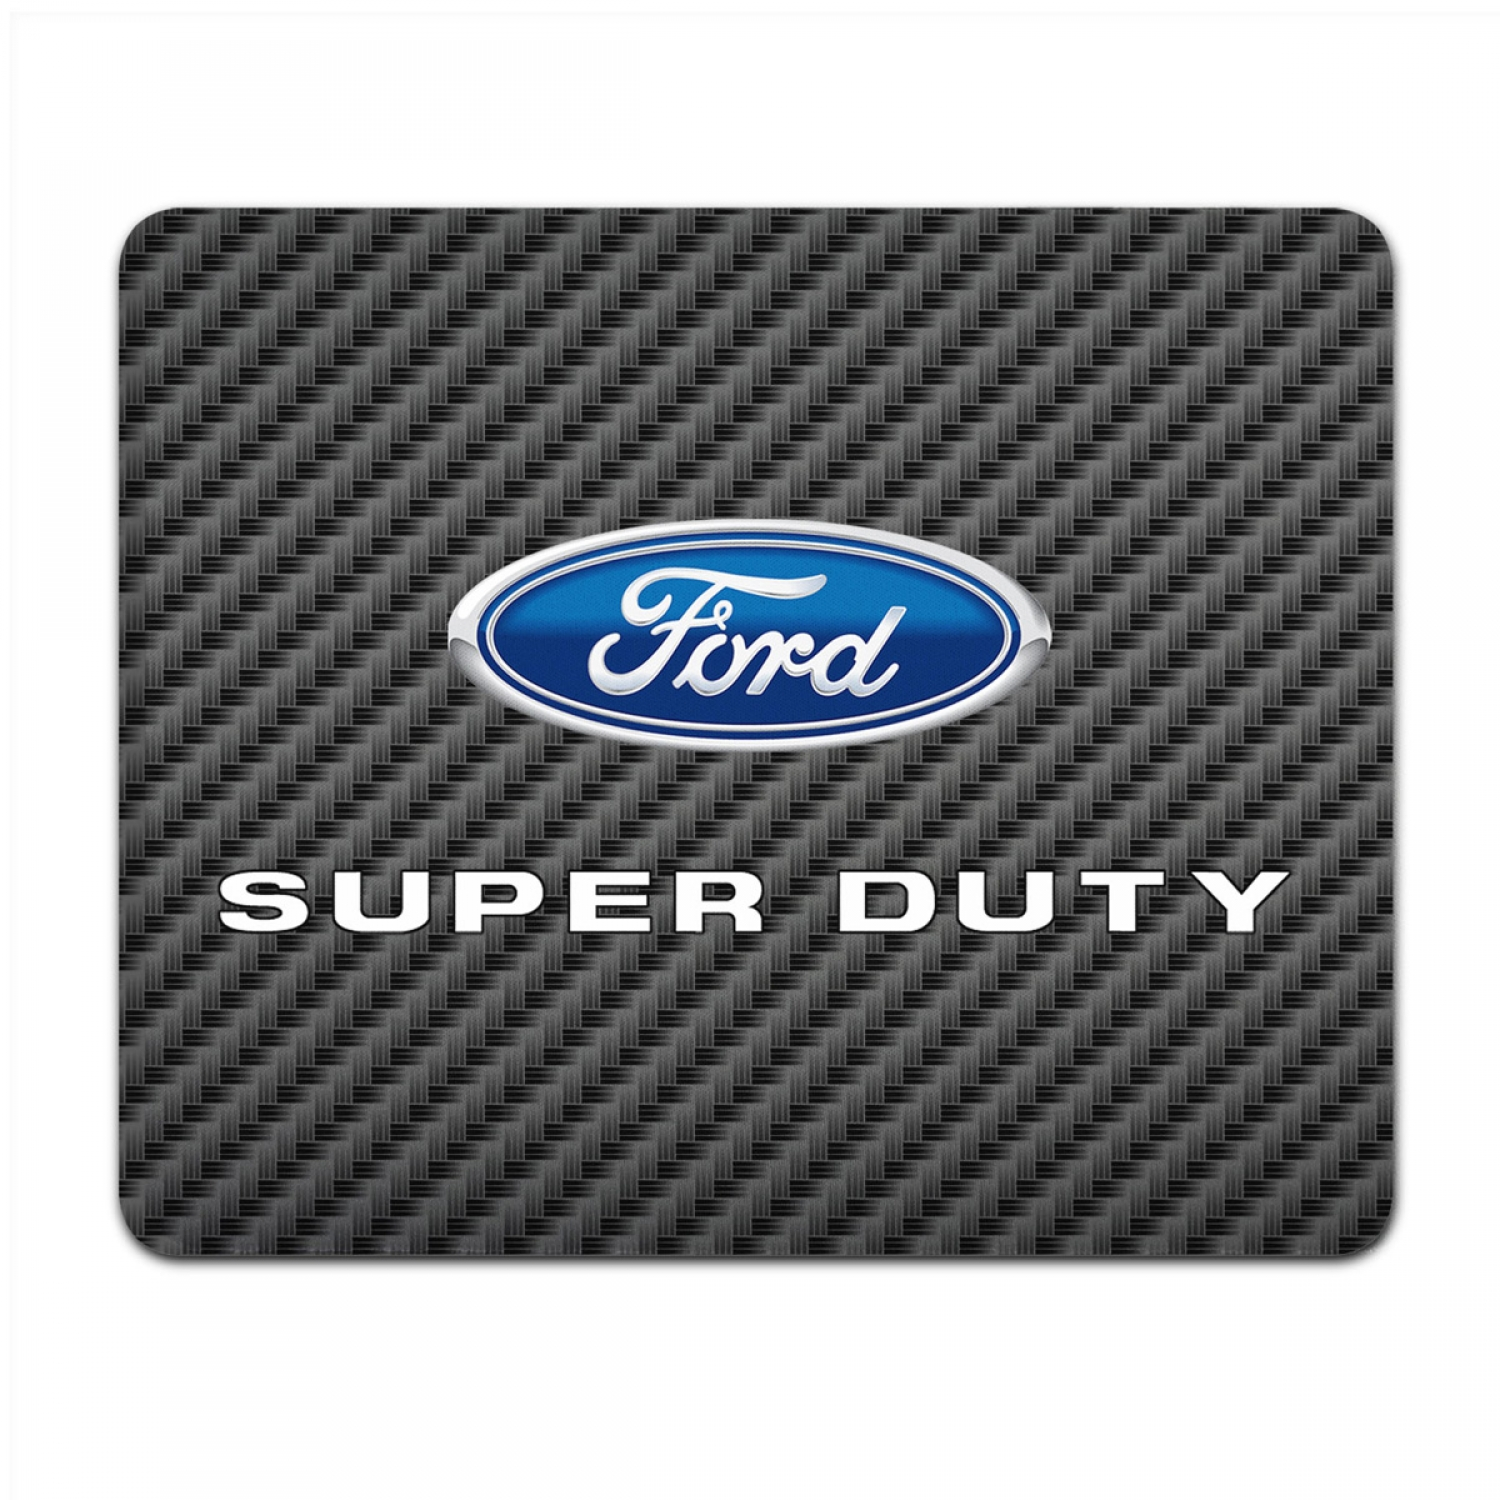 Ford Super-Duty Black Carbon Fiber Texture Graphic PC Mouse Pad